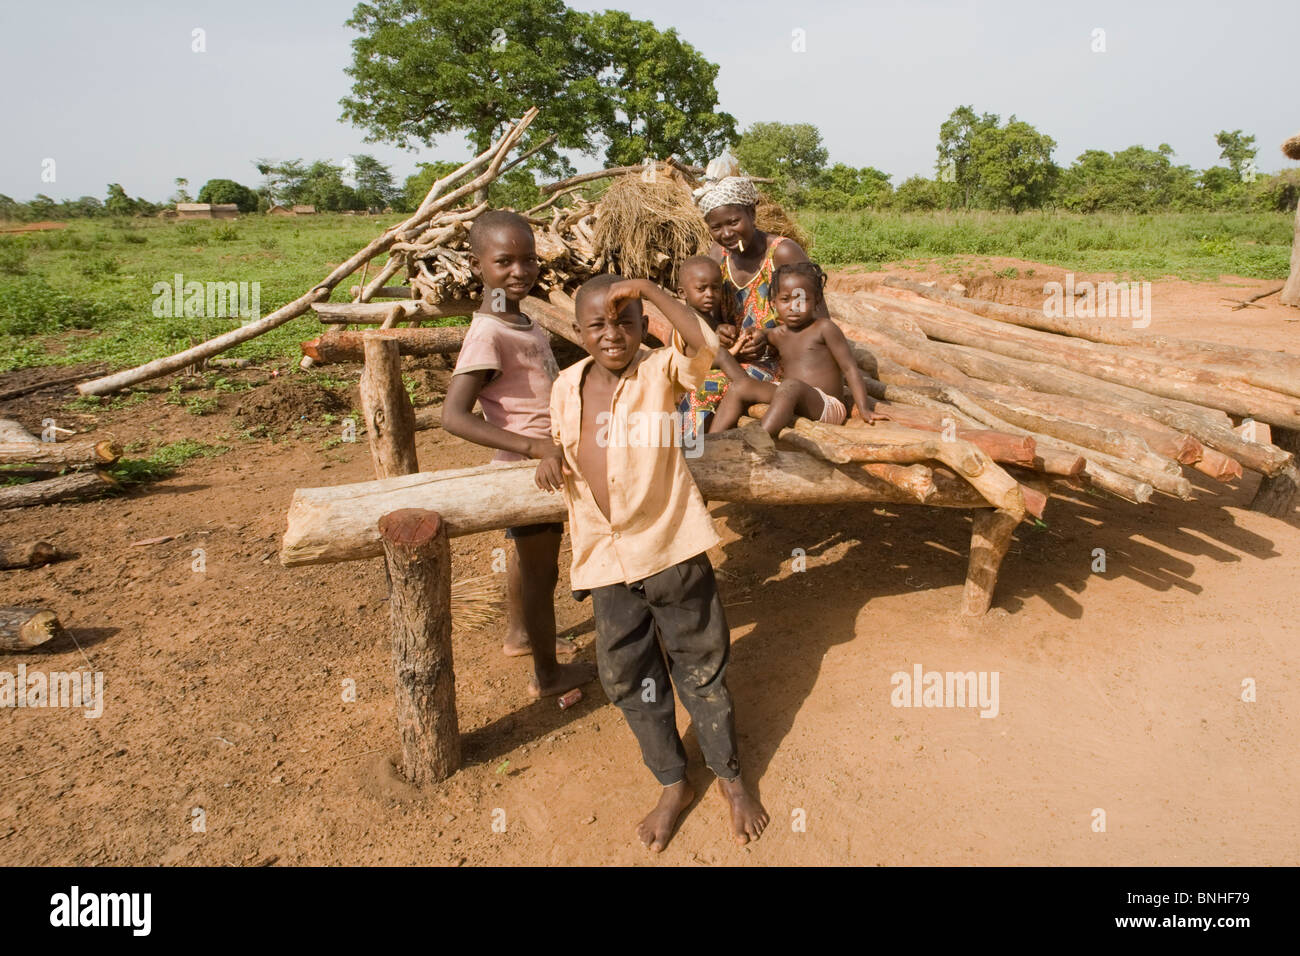 Bemobah family at the village of Sor No. 1, Gonja triangle, Damango district, Ghana. Stock Photo